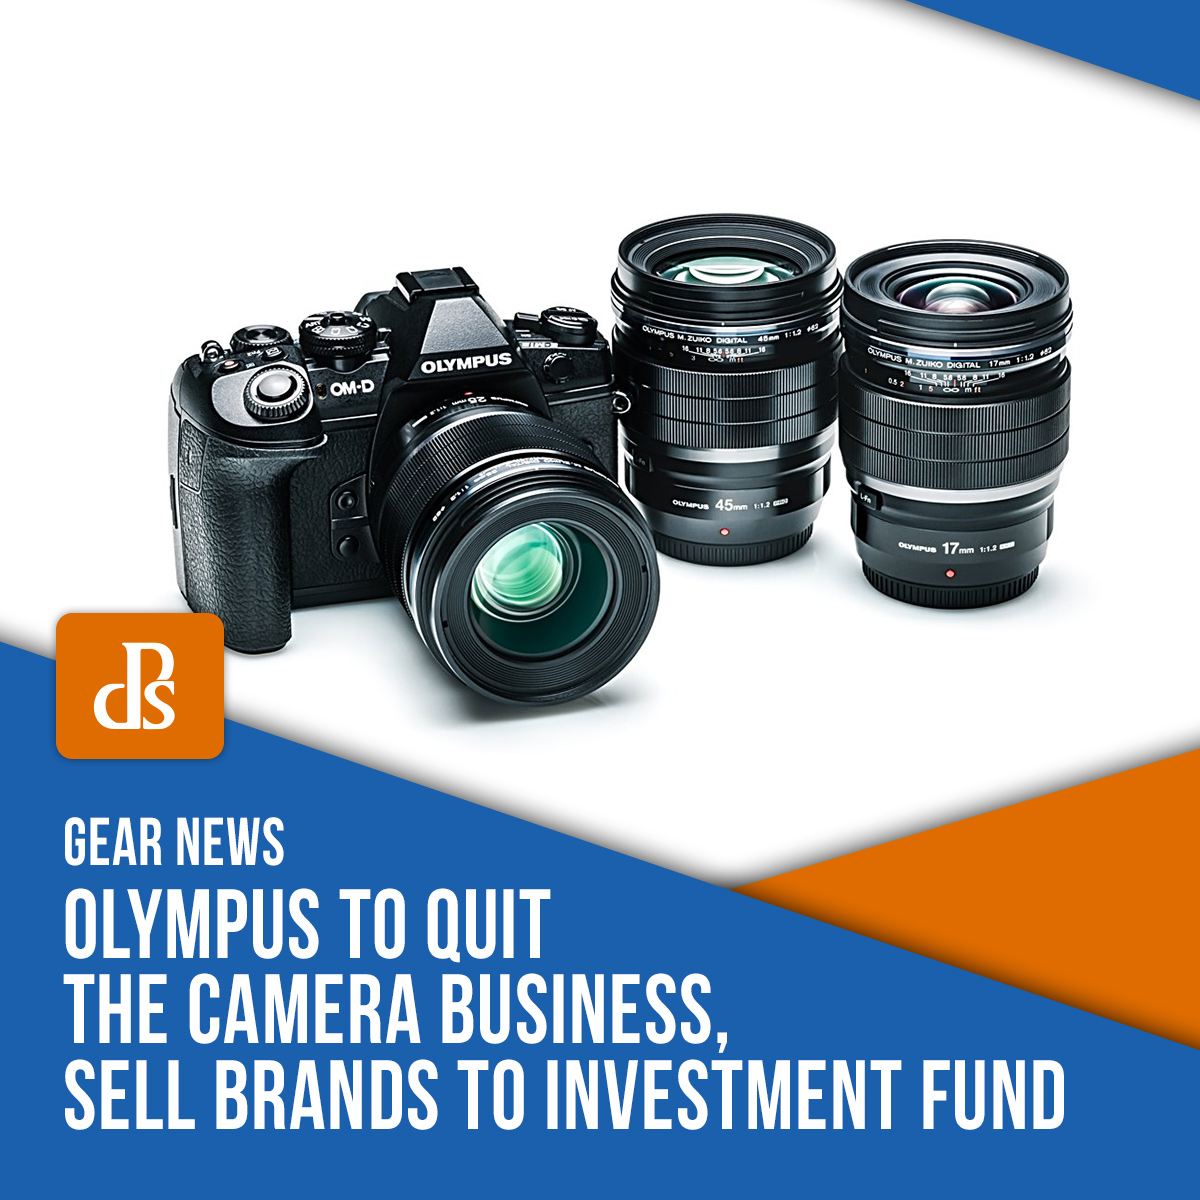 https://i0.wp.com/digital-photography-school.com/wp-content/uploads/2020/06/dps-olympus-to-quit-camera-business.jpg?ssl=1